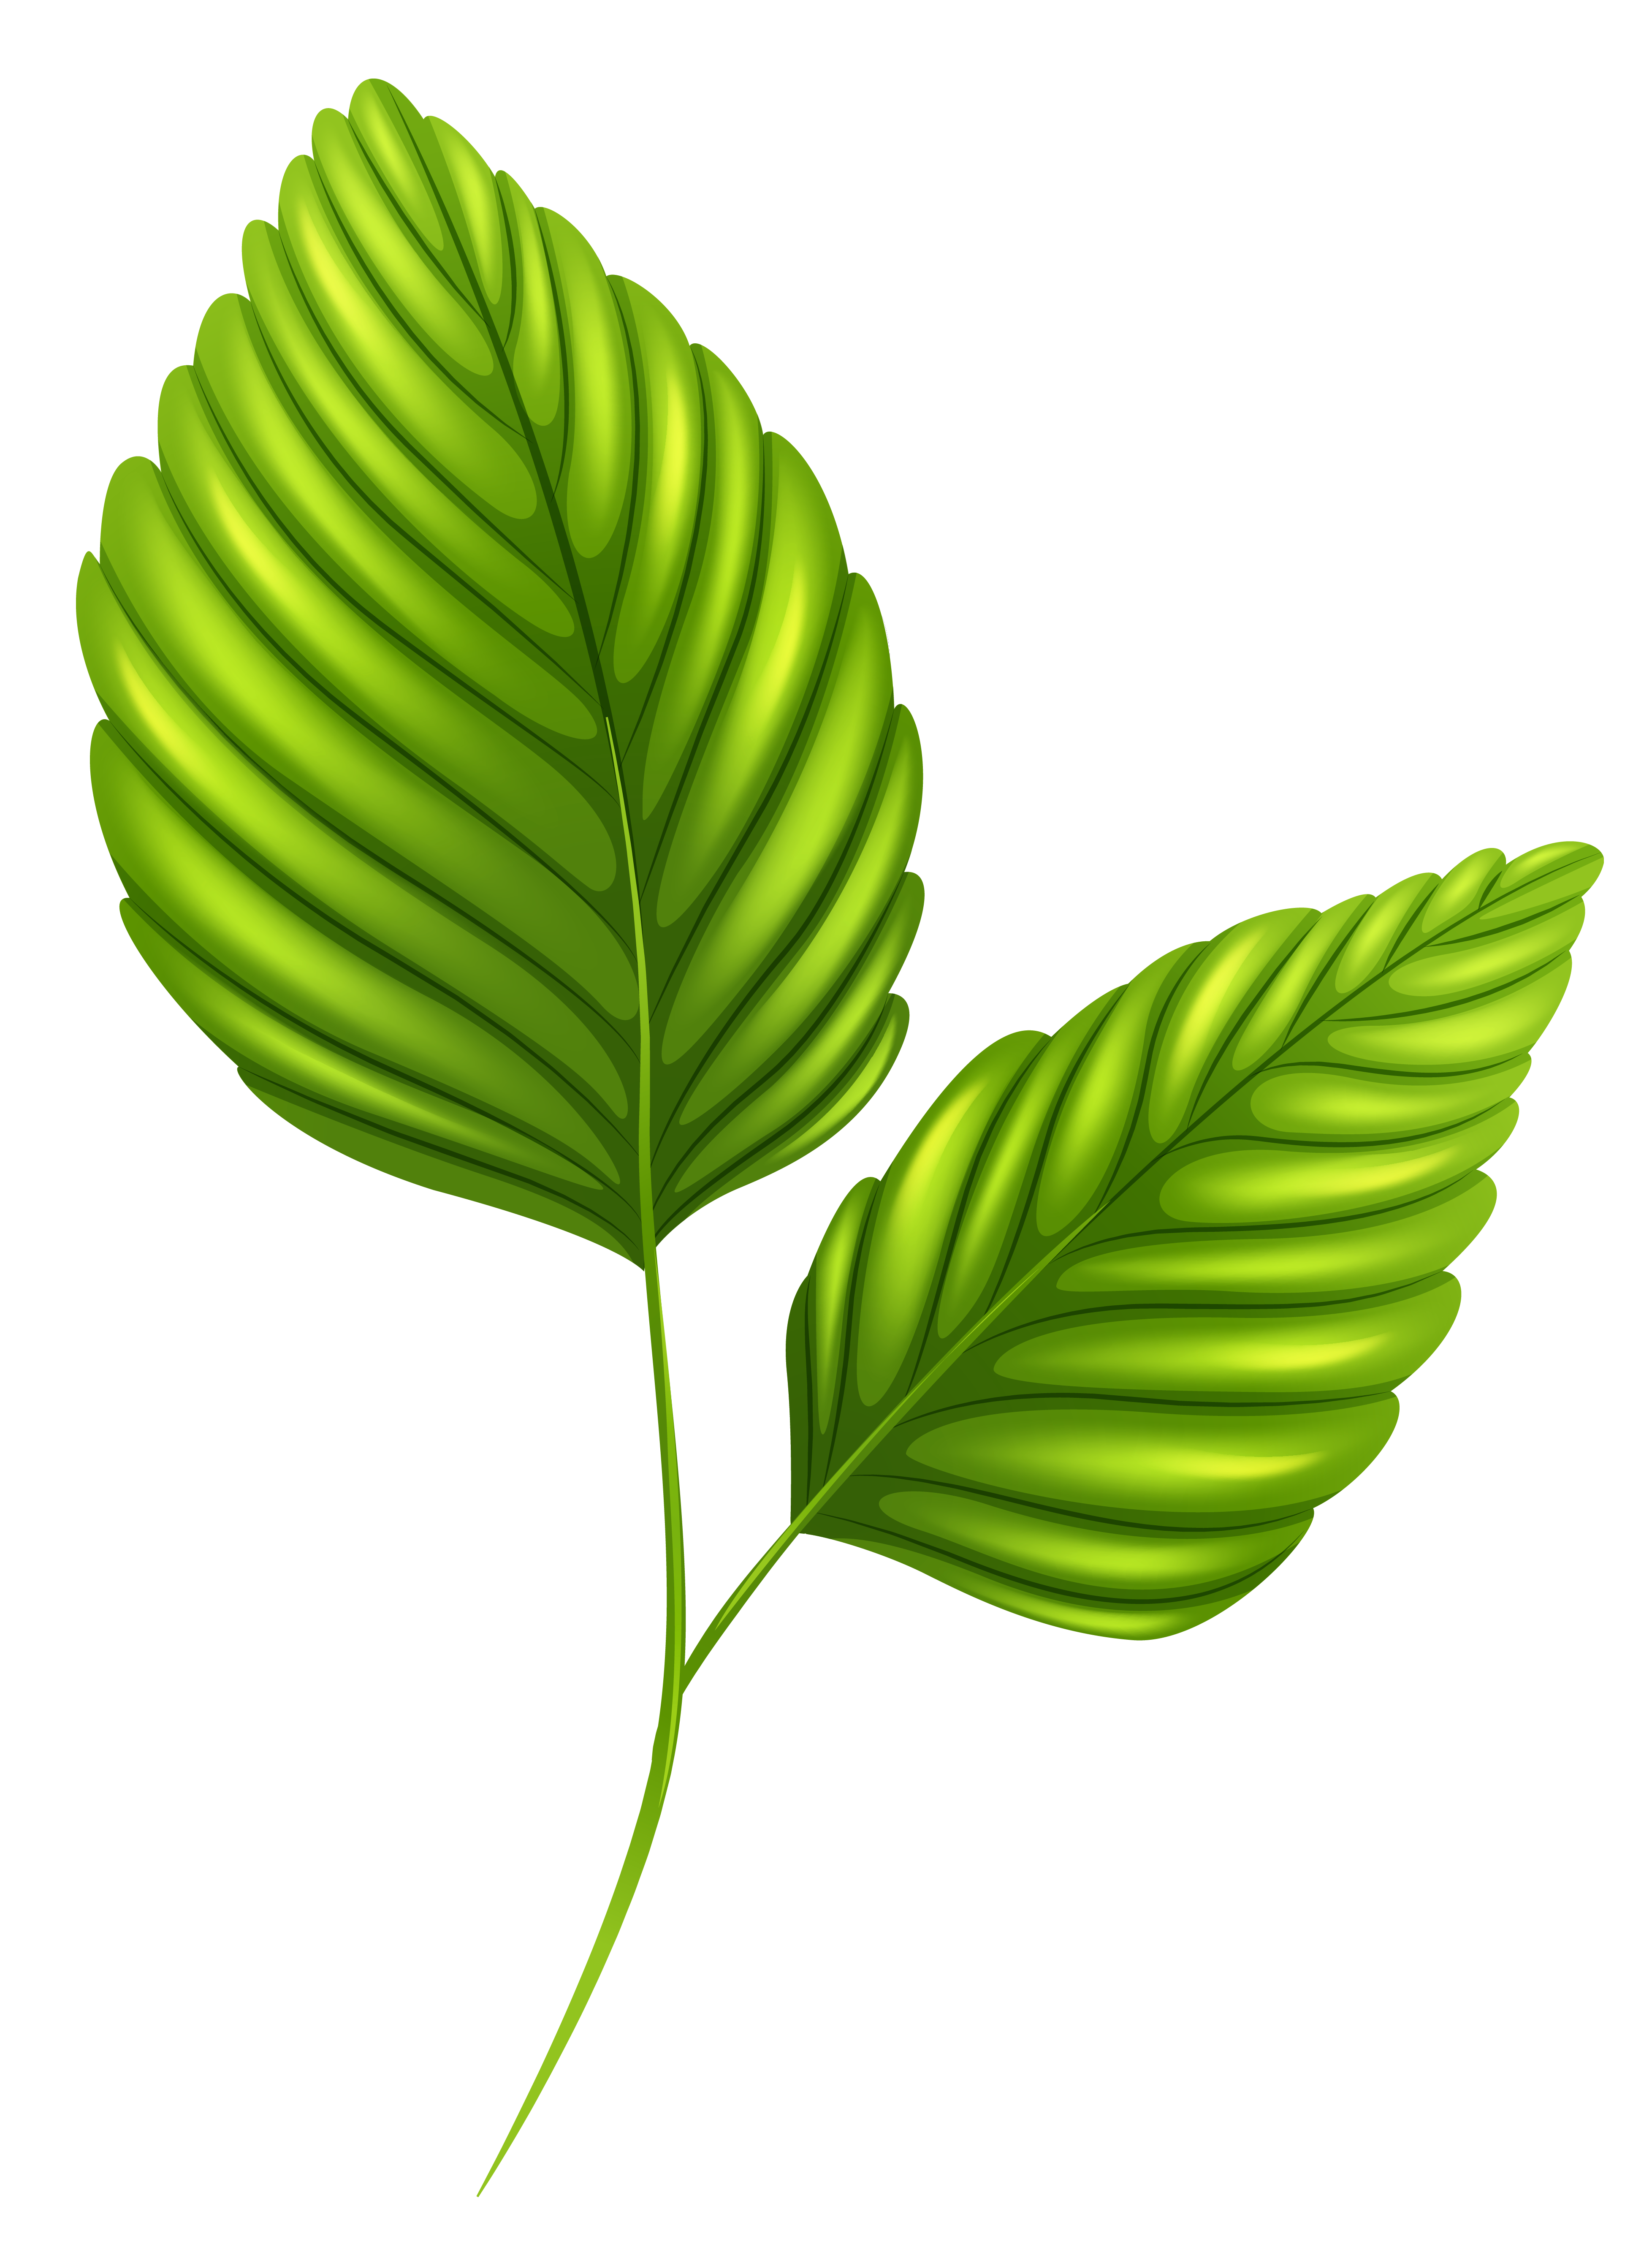 2 Leaves Clipart.